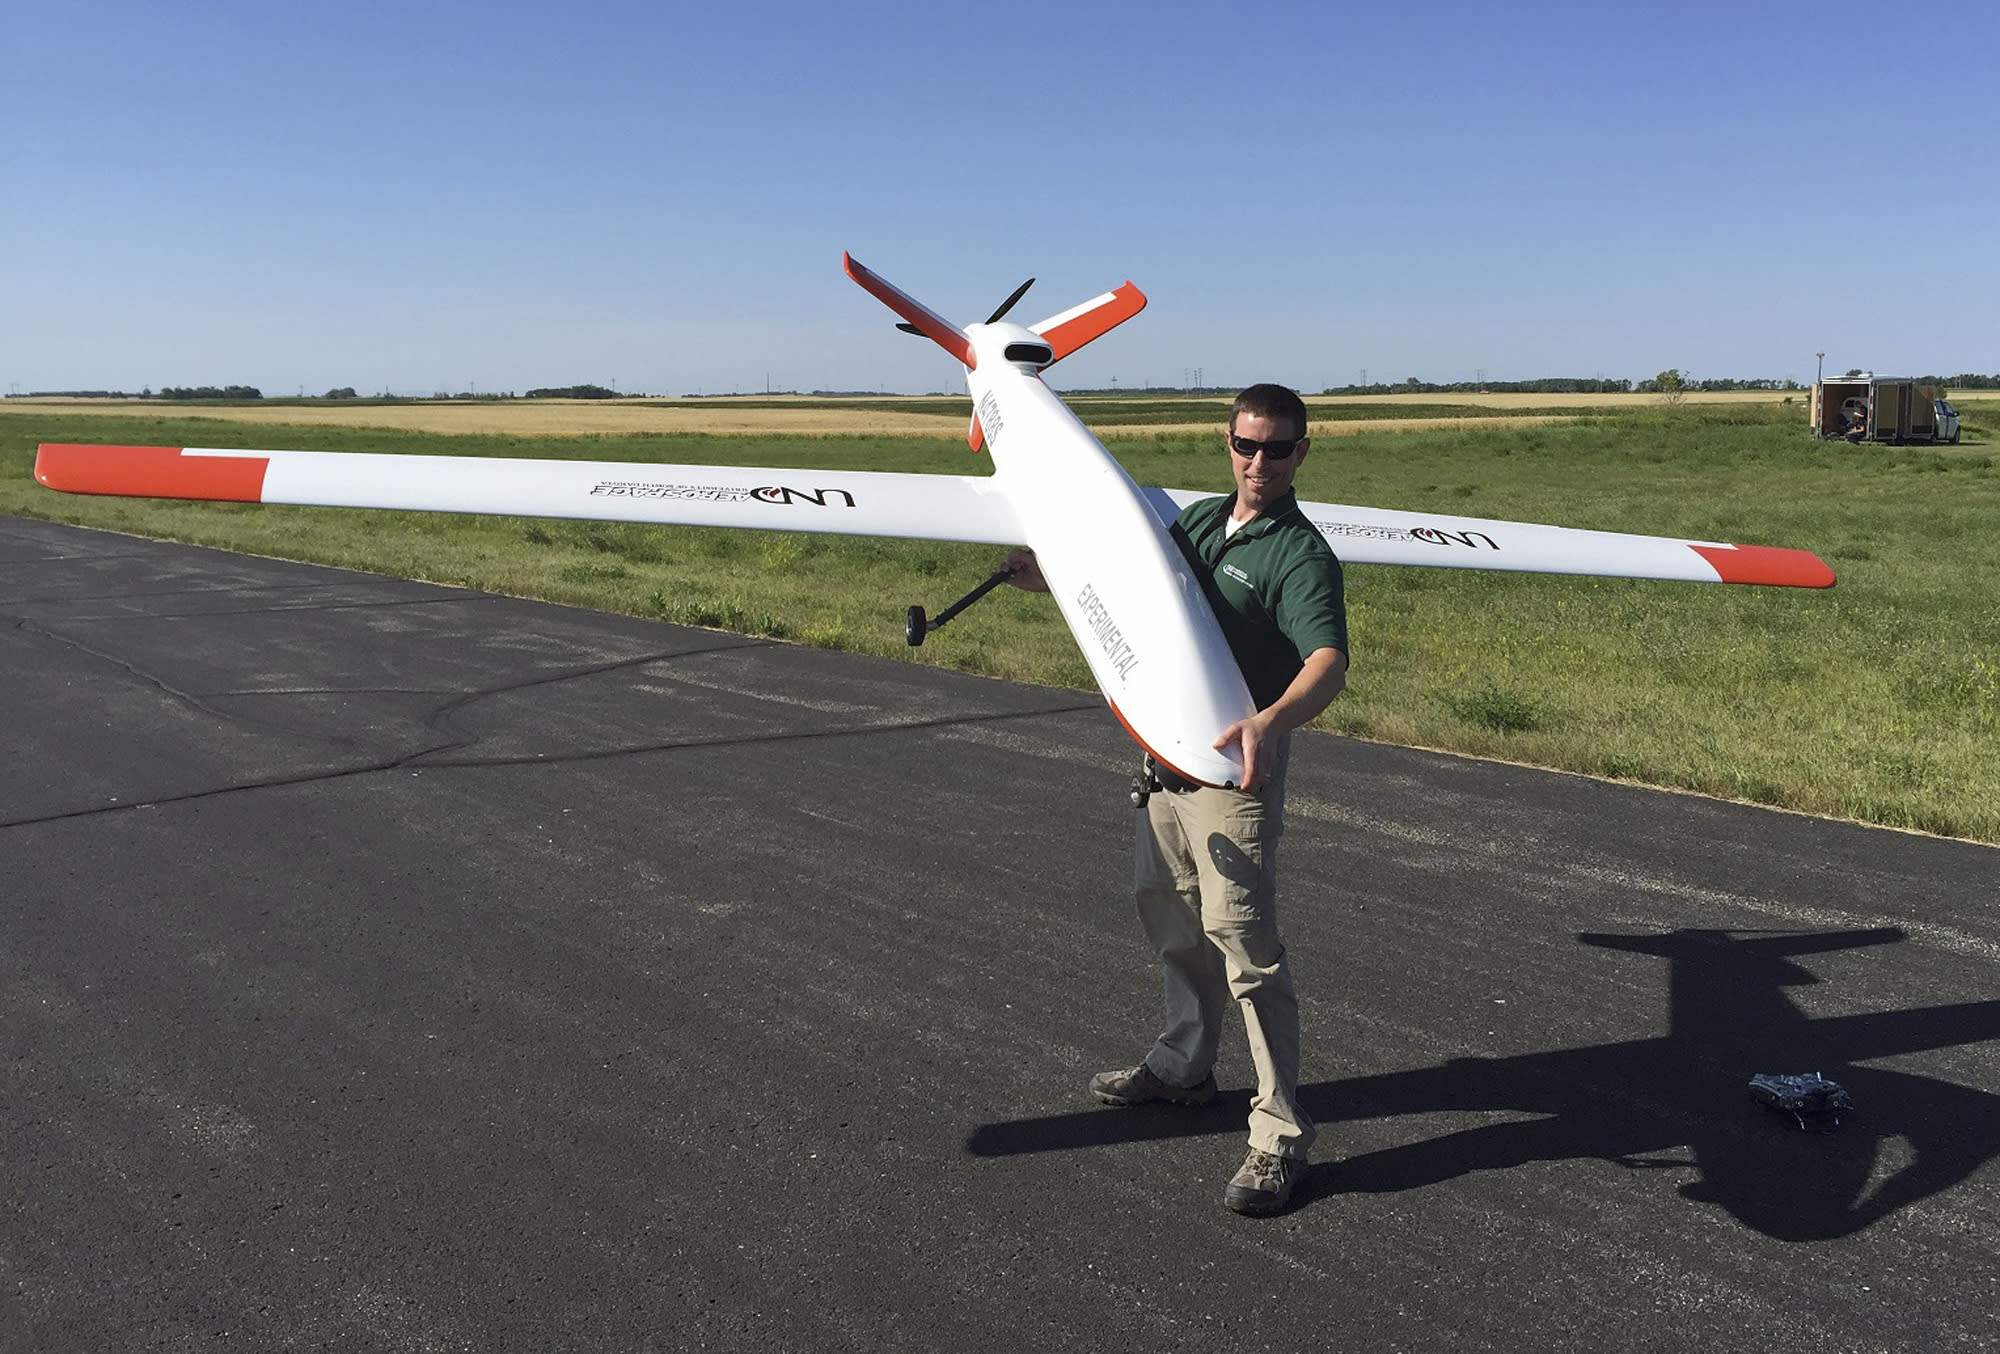 UND test pilots fly drone into public airport for 1st time